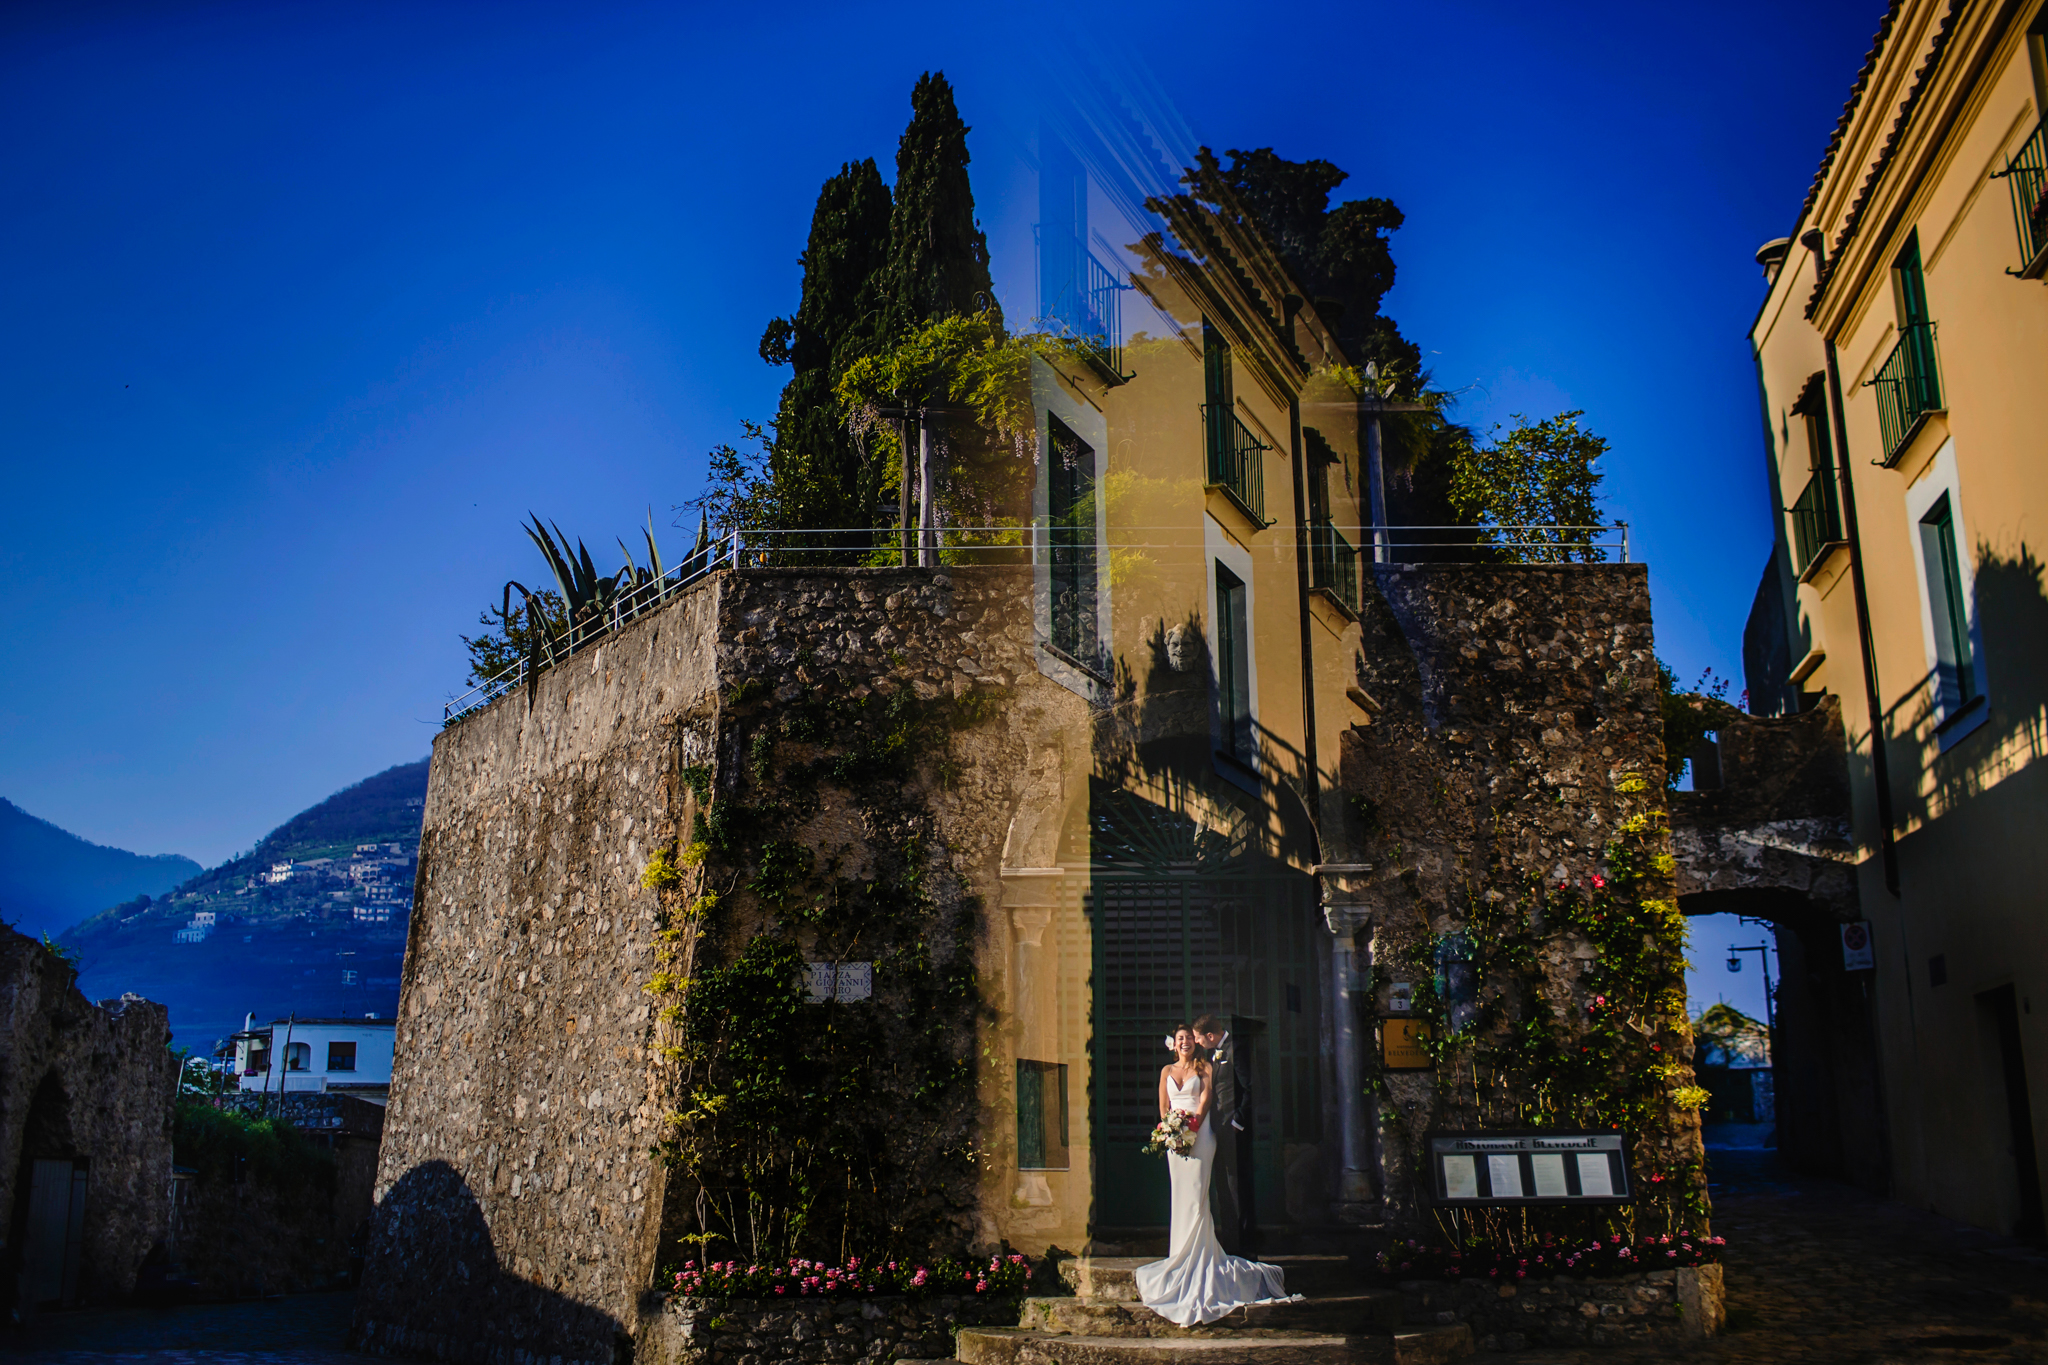 bride and groom portrait in old city location- photo by Chrisman Studios